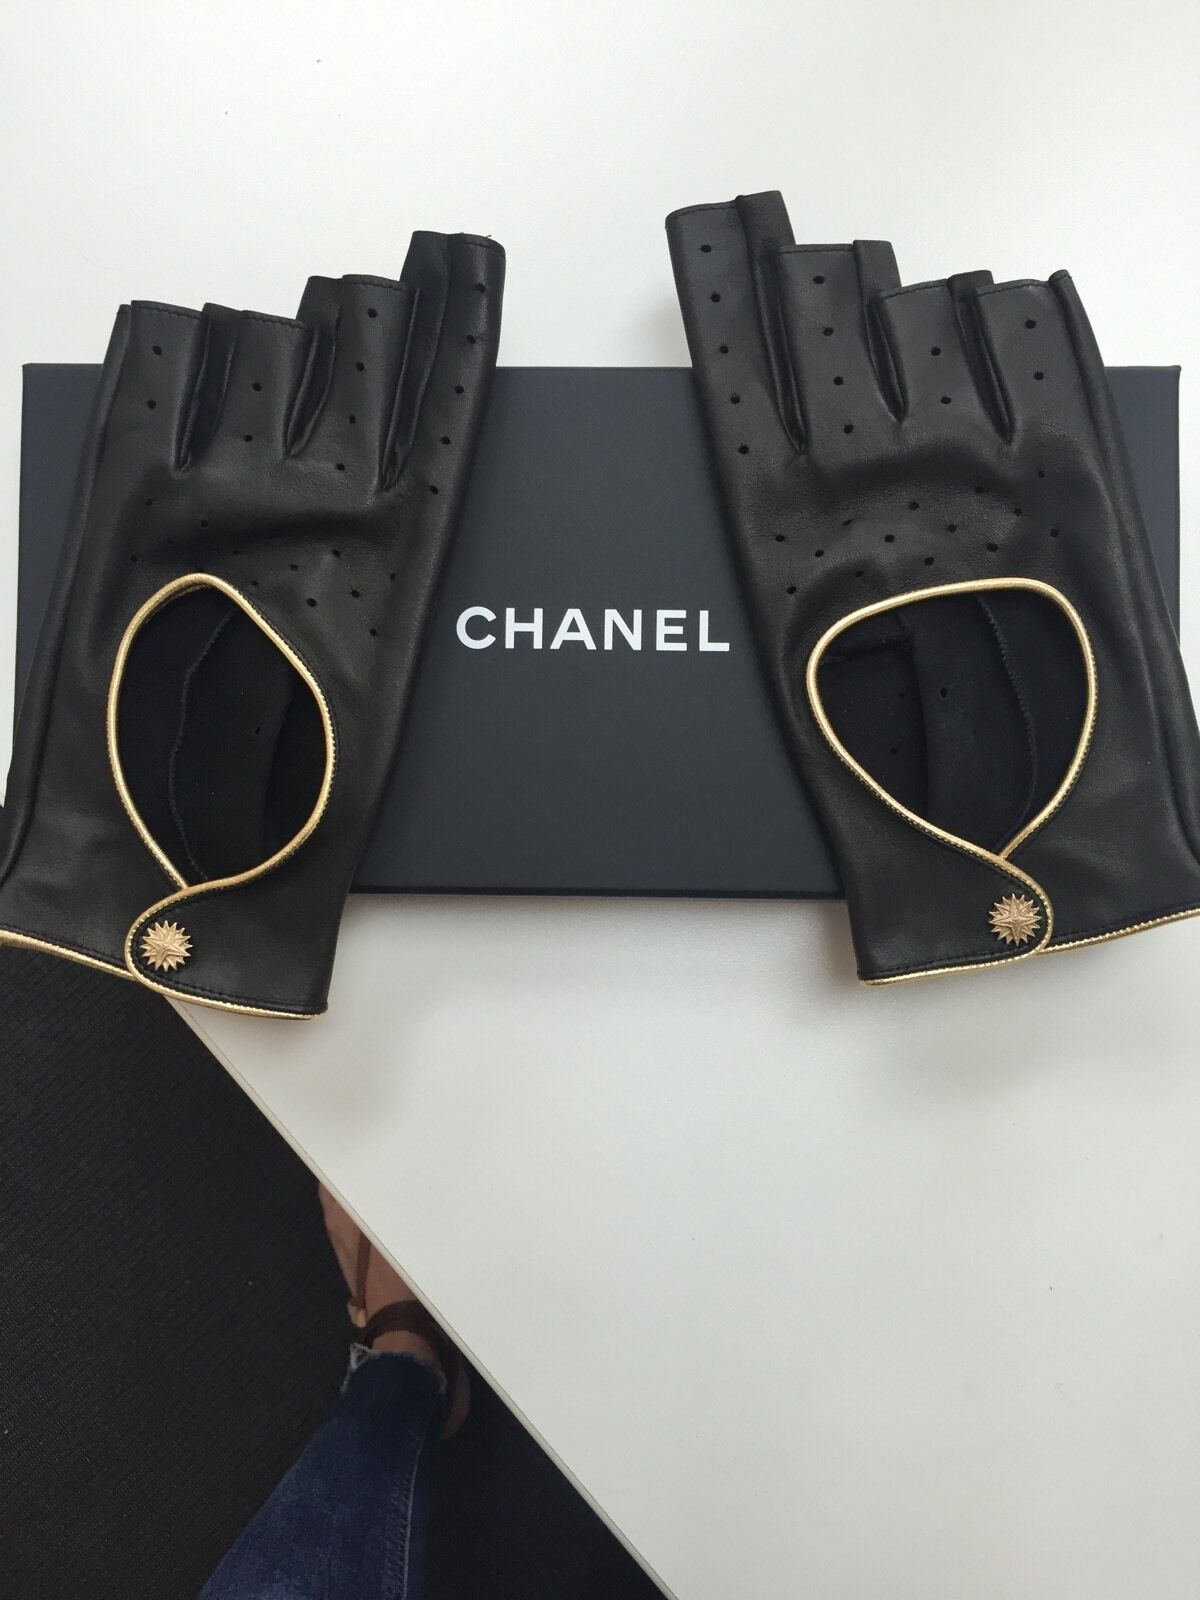 Gold driving gloves - Chanel Driving Gloves Fingerless Black Leather With Gold